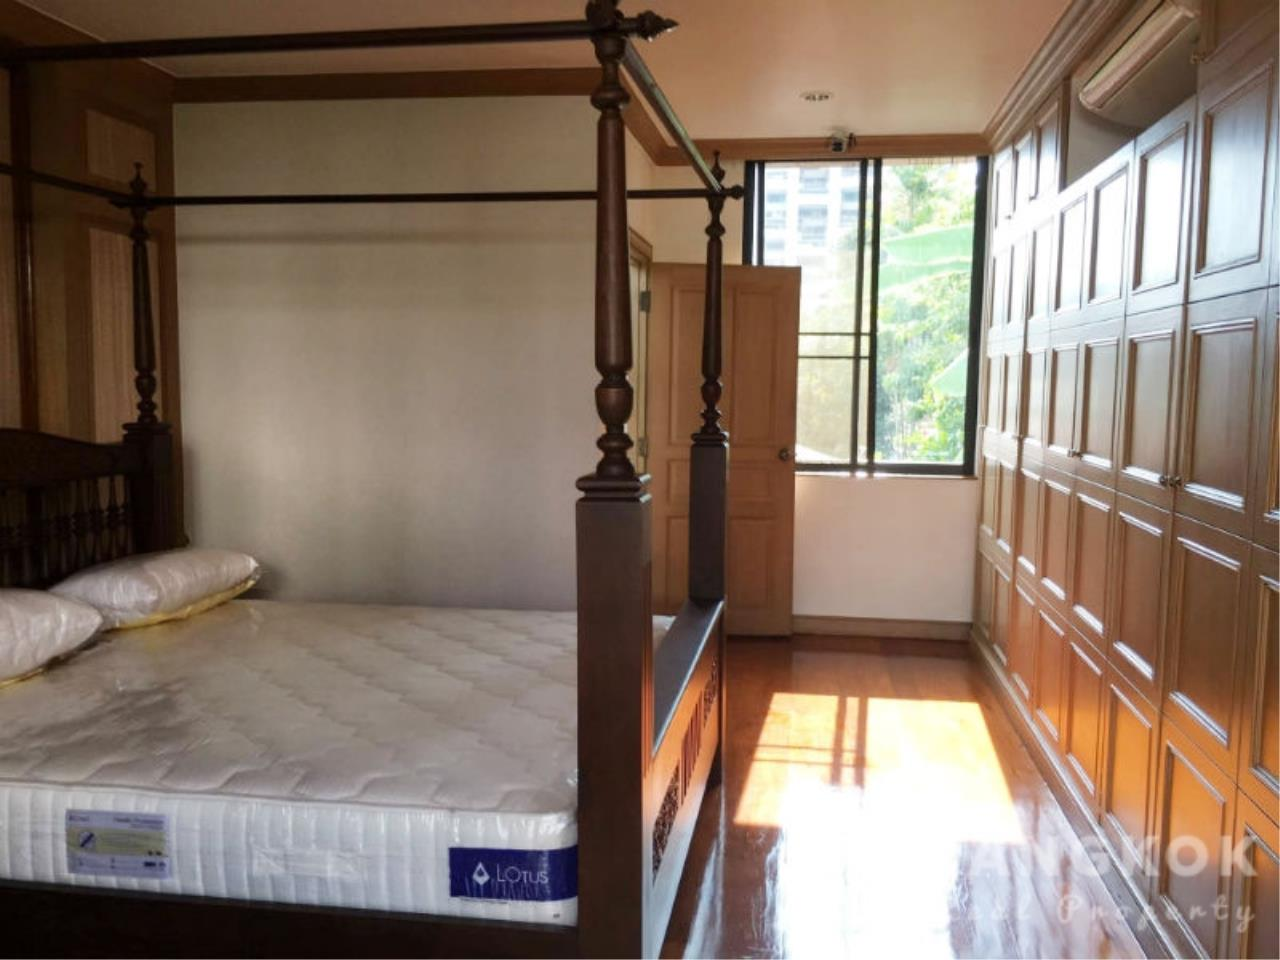 Bangkok Real Property Agency's Detached Spacious 3 + 1 Bed 3 Bath house with Garden in Nana  7